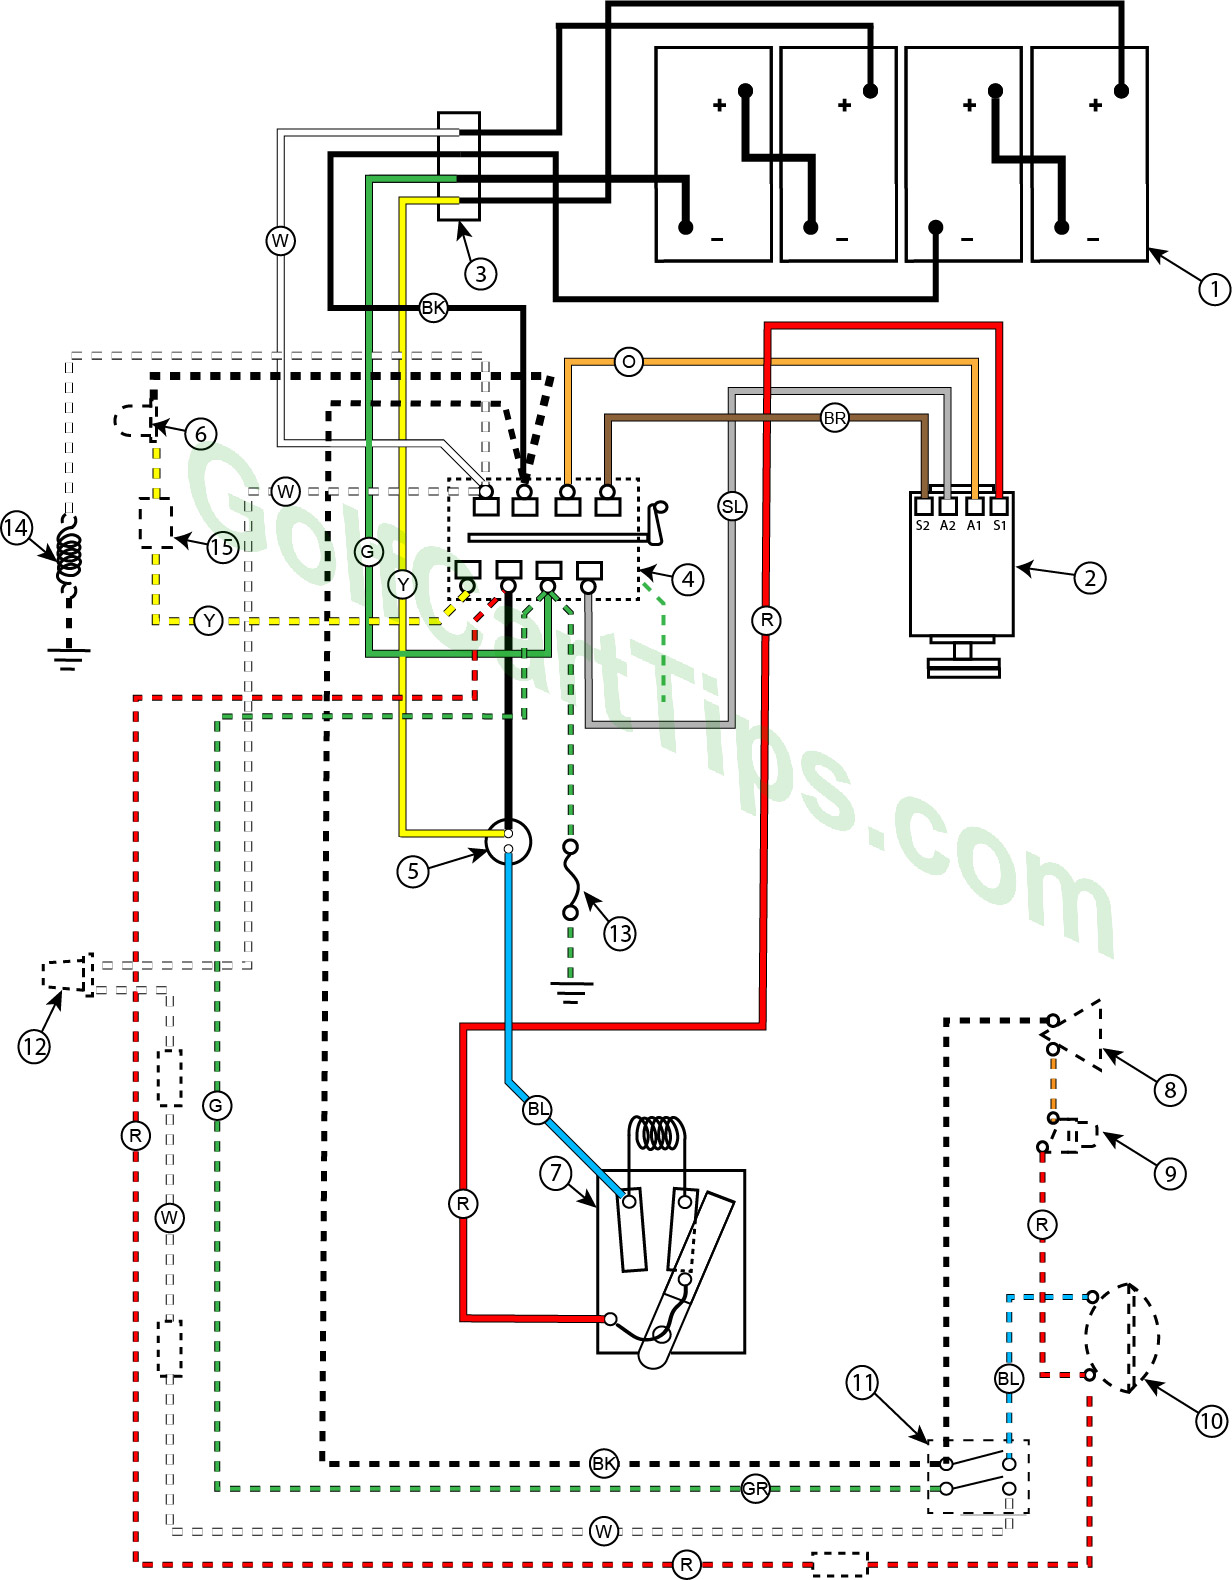 hight resolution of troubleshooting cushman golfsters 1954 58 wiring diagrams re wiring problem on my cushman source cushman electric golf cart